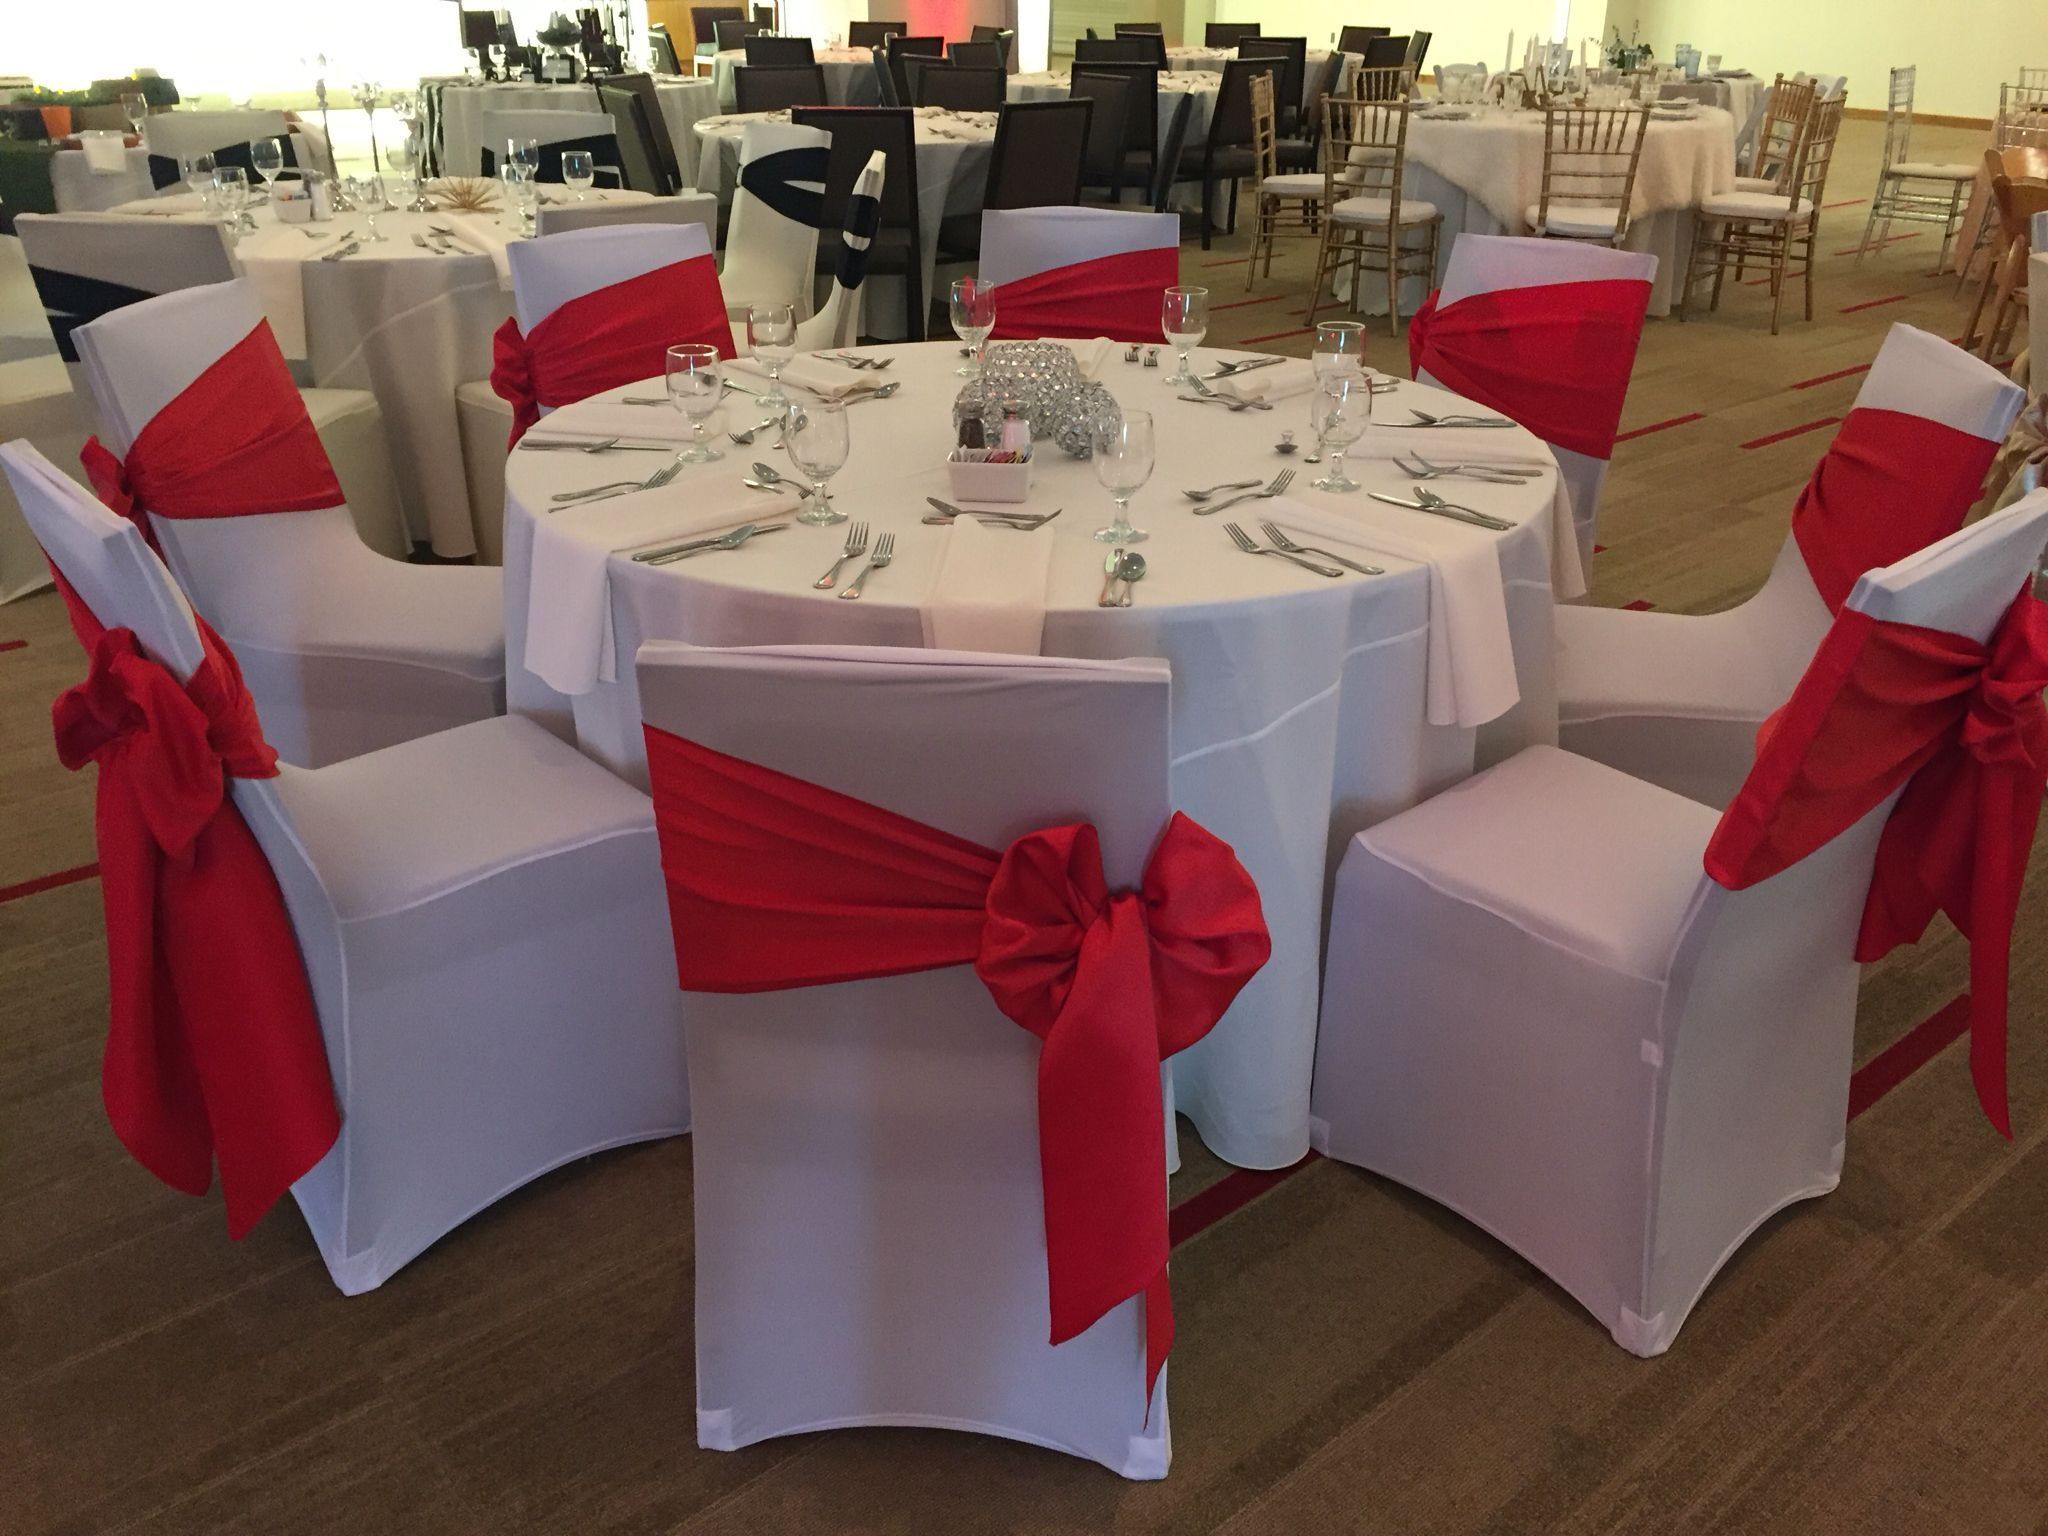 Spandex Covers W Red Satin Bow Spandex Chair Covers Chair